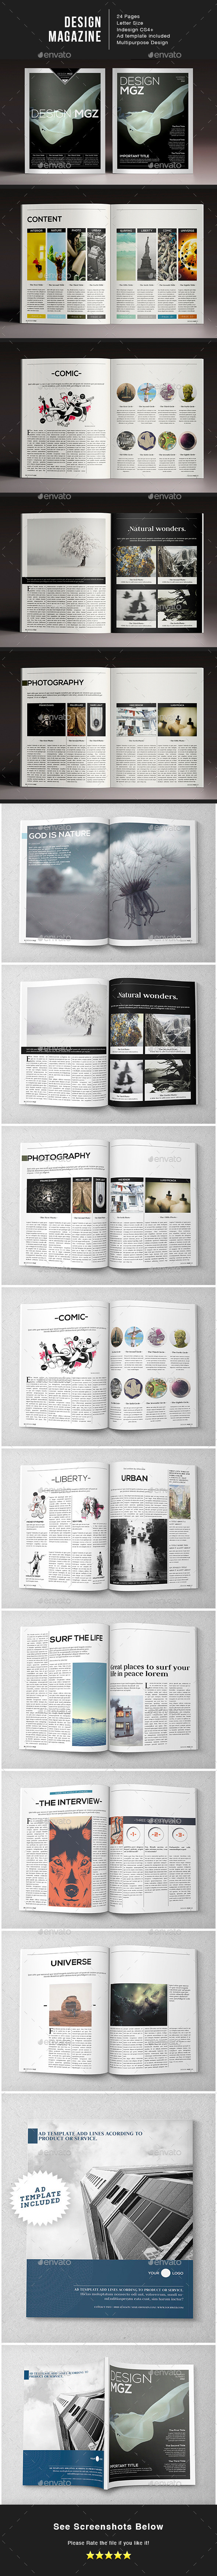 Design Magazine 1 Indesign Template - Magazines Print Templates